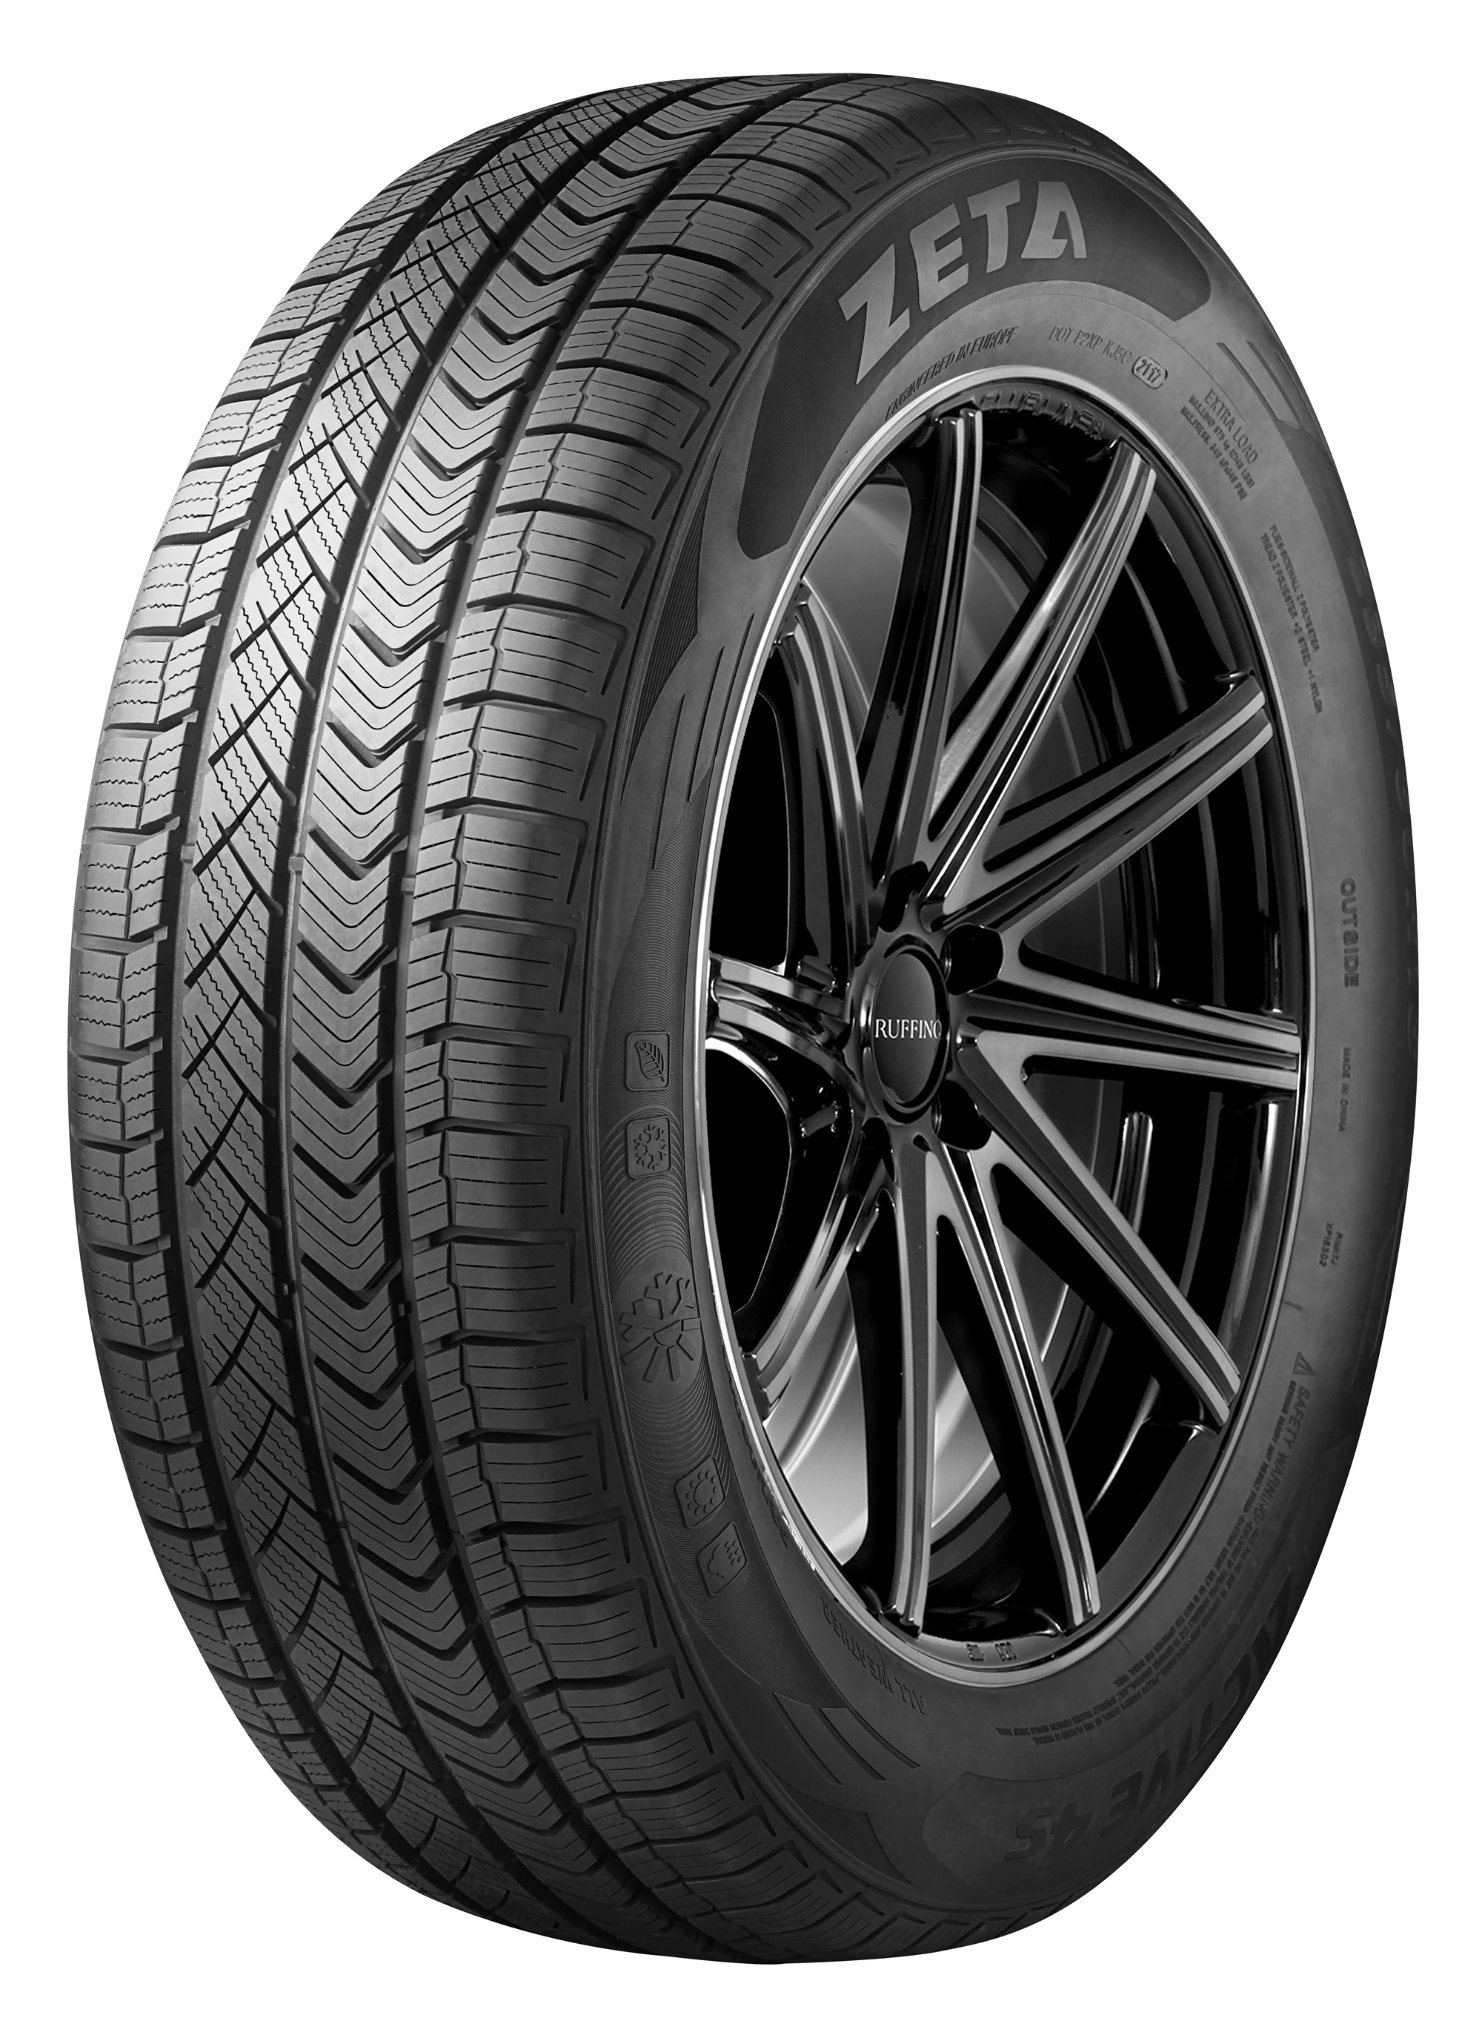 Anvelopa All Season Zeta Active 4s 185/55R15 82 H